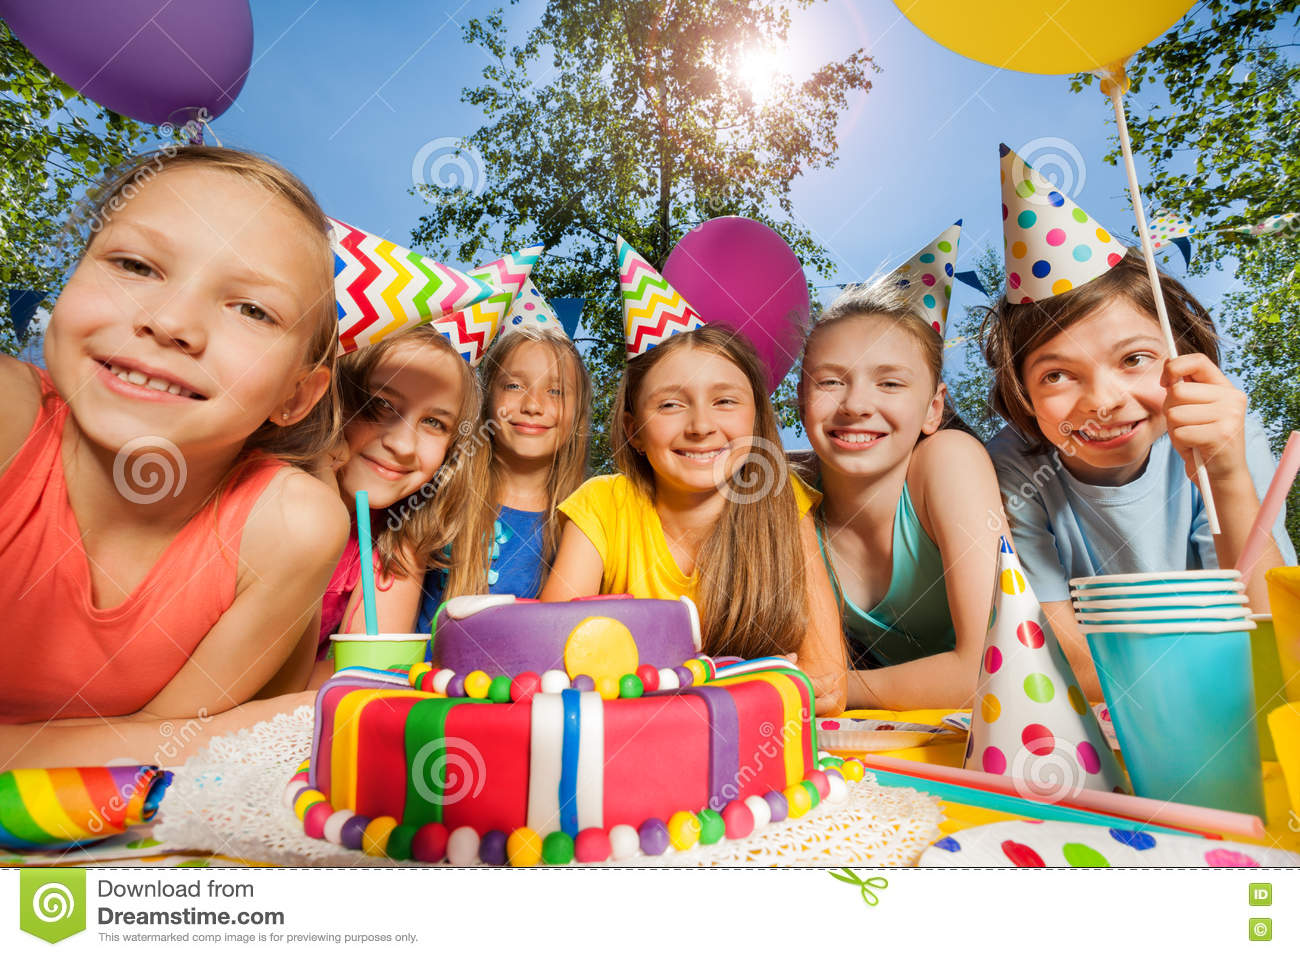 Six happy kids in party hats around birthday cake